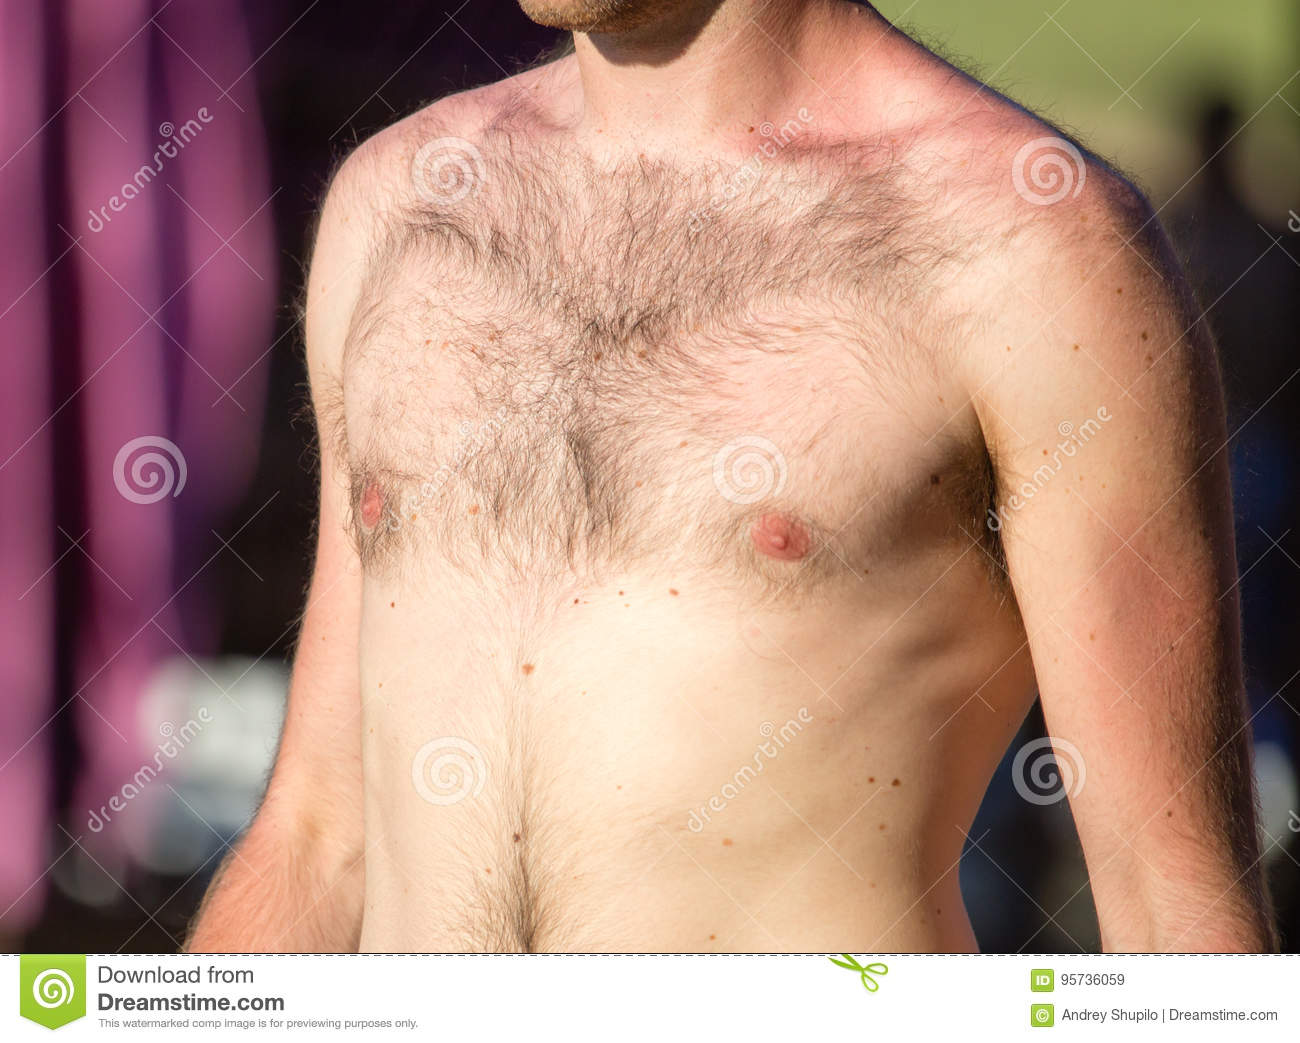 Naked Hairy Grandpa Simple hairy chest stock photos - royalty free pictures